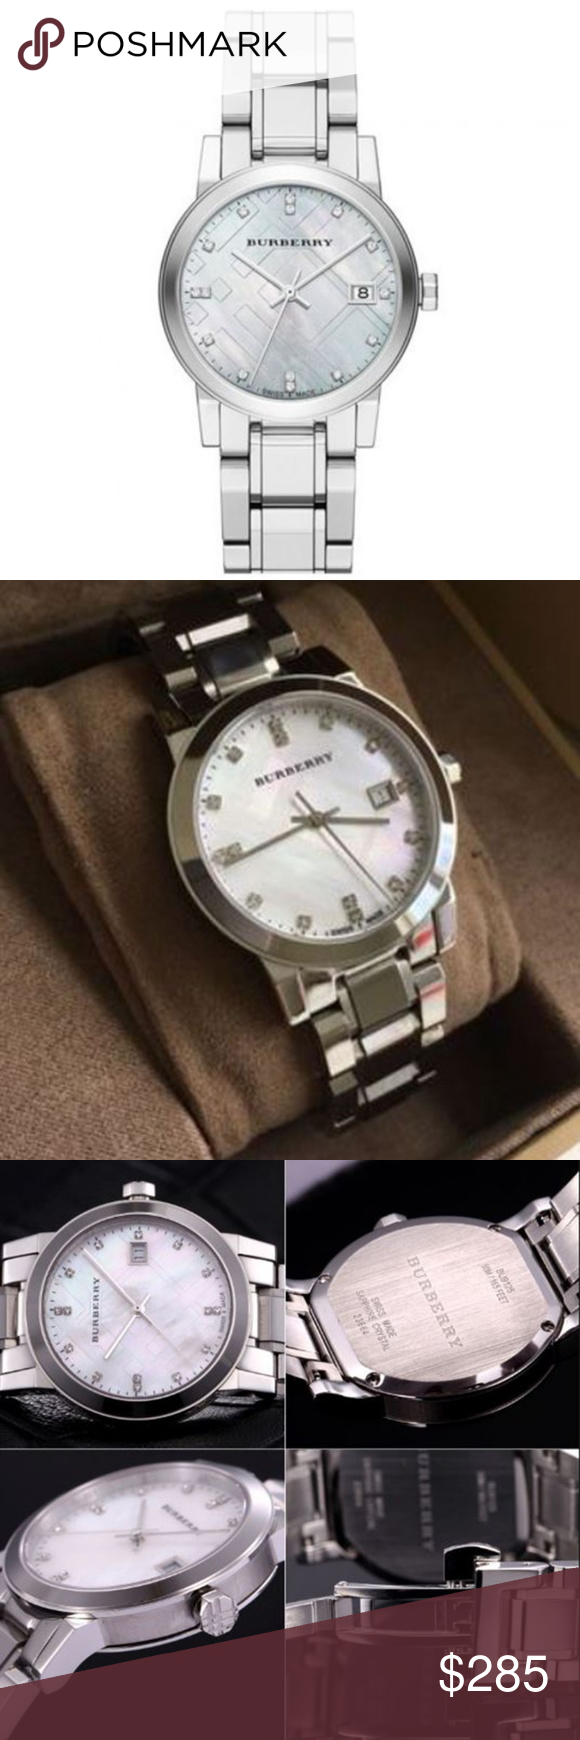 8acf3b08e9f2 New Burberry Diamond Accent Ladies BU9125 Watch New Burberry Diamond Accent Stainless  Steel Ladies Watch BU9125 Brand New 100% Authentic Watch Information ...